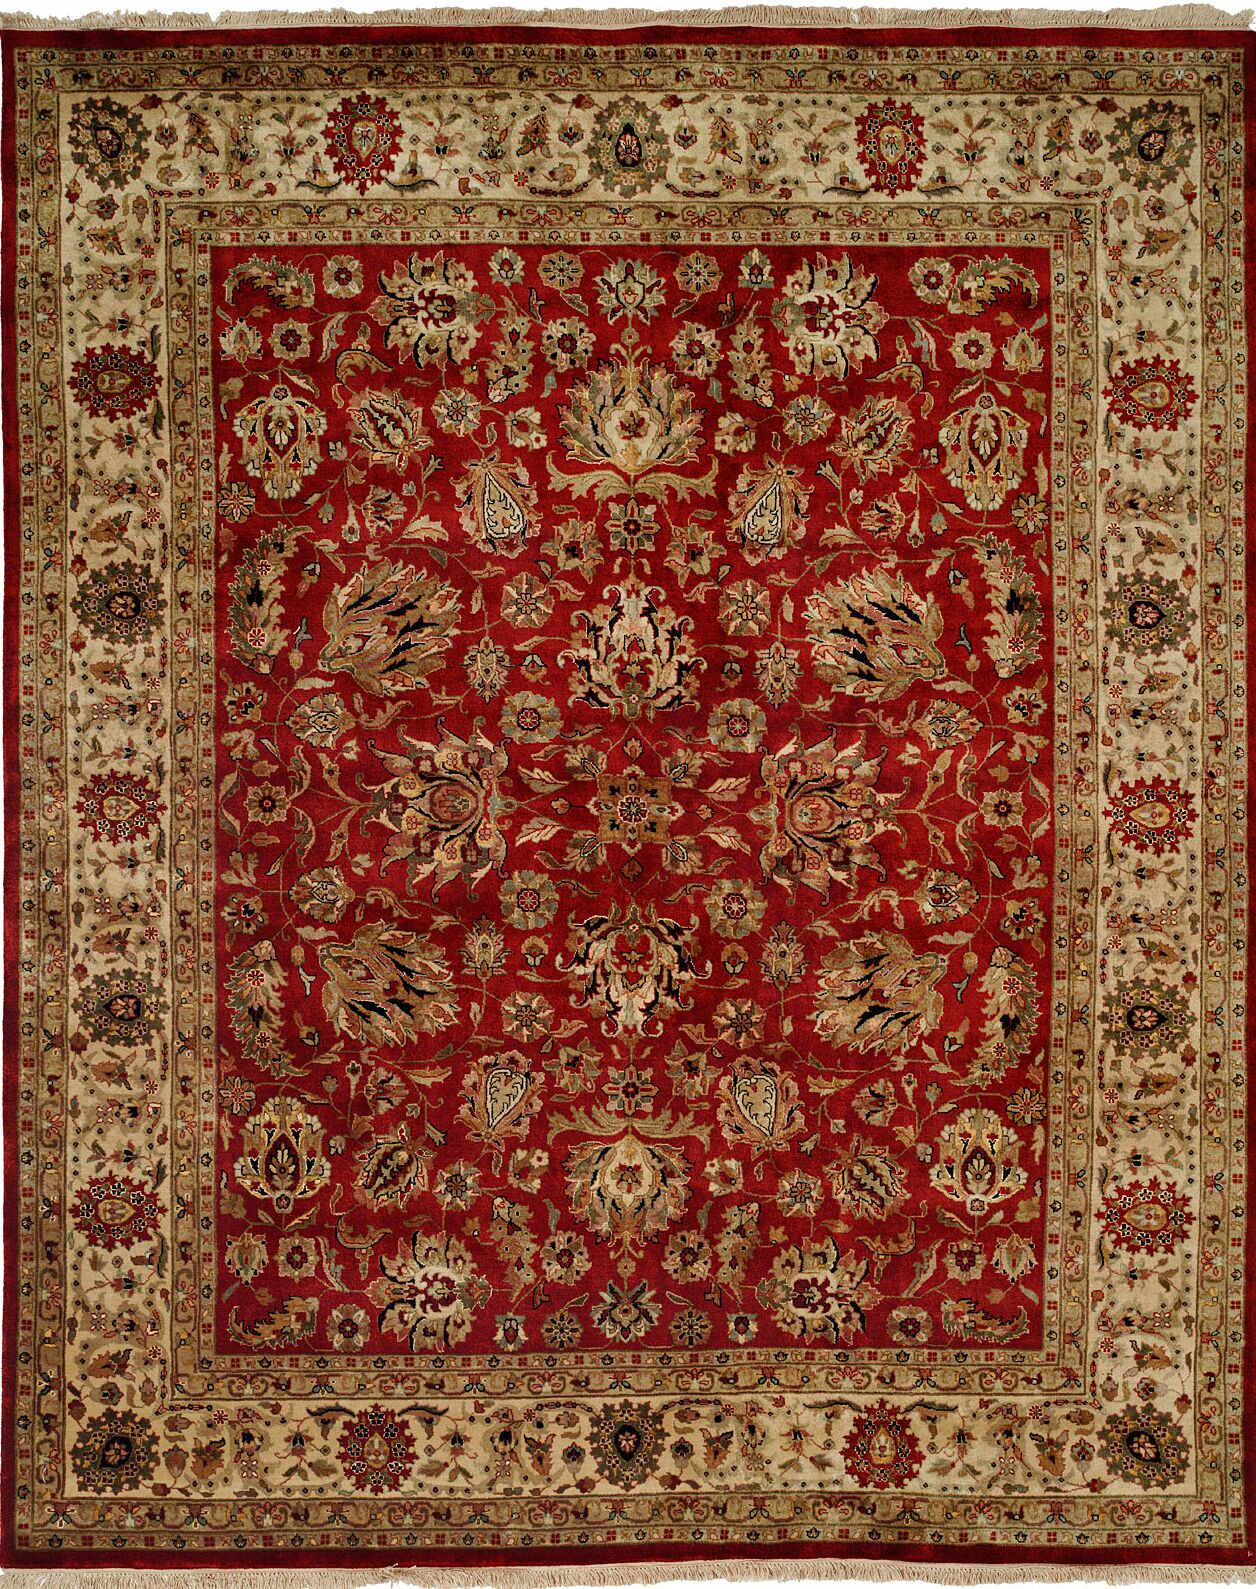 Hand-Knotted Red/Beige Area Rug Rug Size: Rectangle 6' x 9'